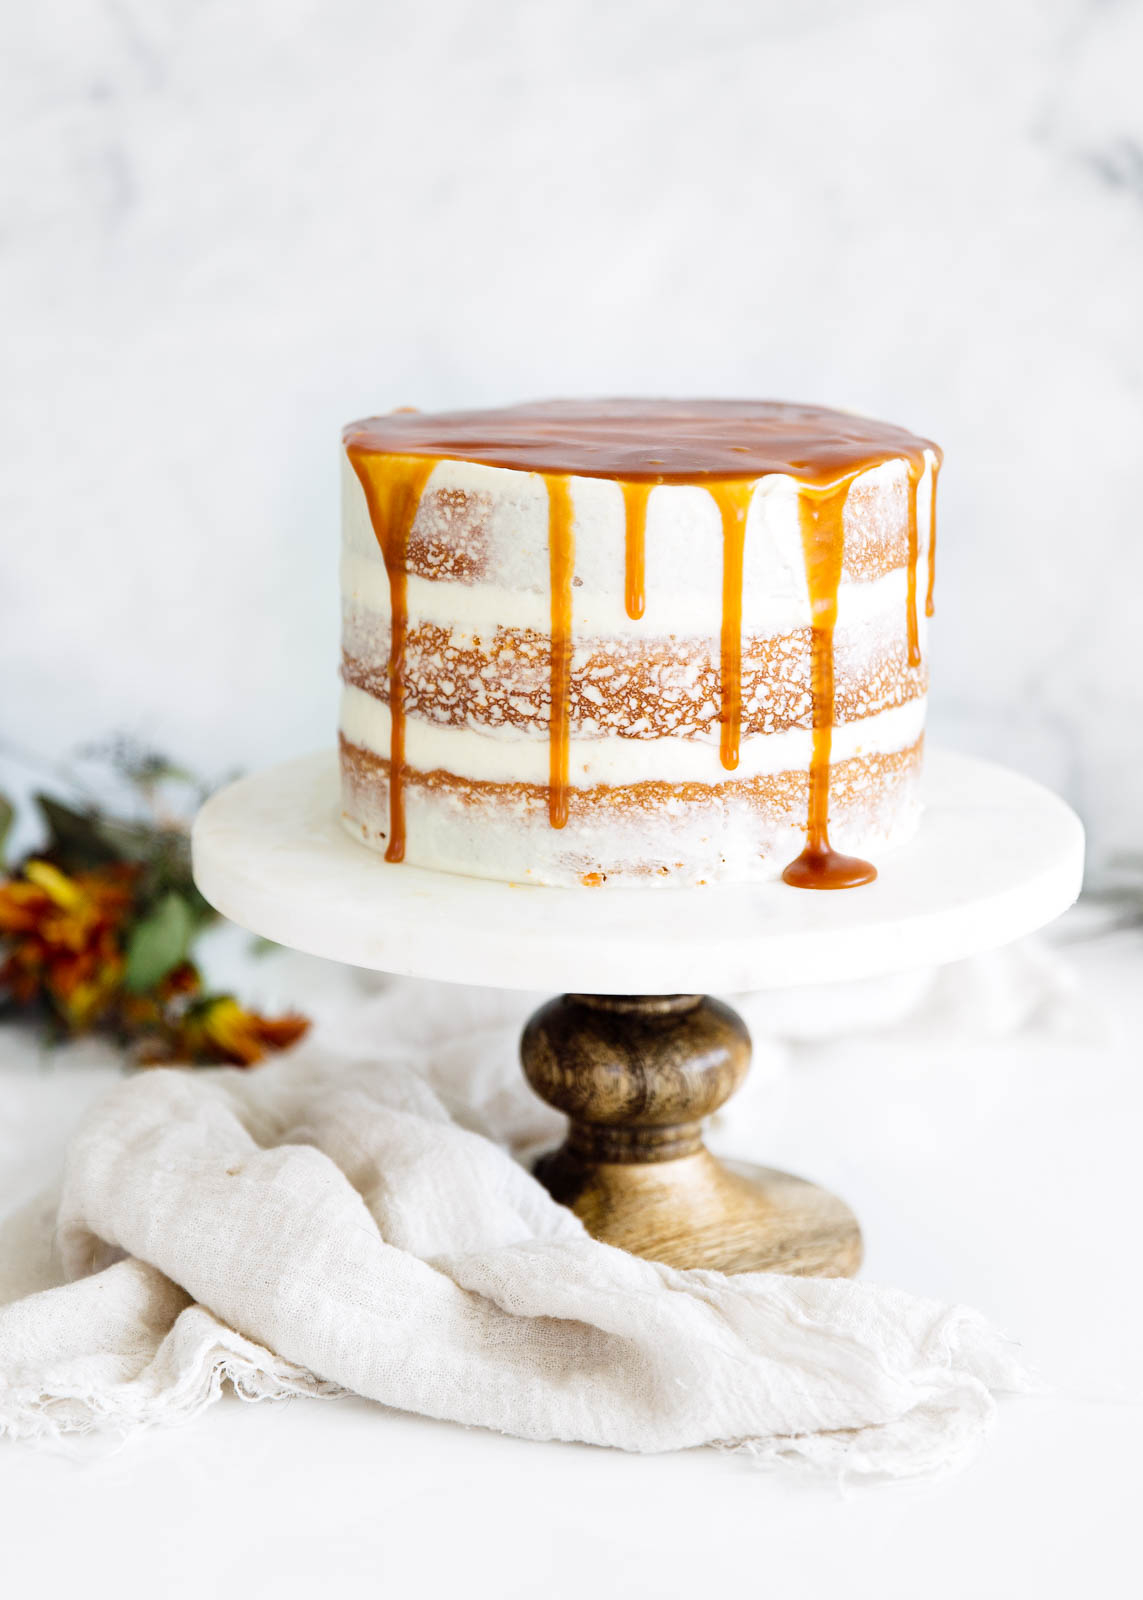 Carrot Cake Birthday Cake Cardamom Spiced Carrot Cake With Ginger Frosting Caramel Drizzle